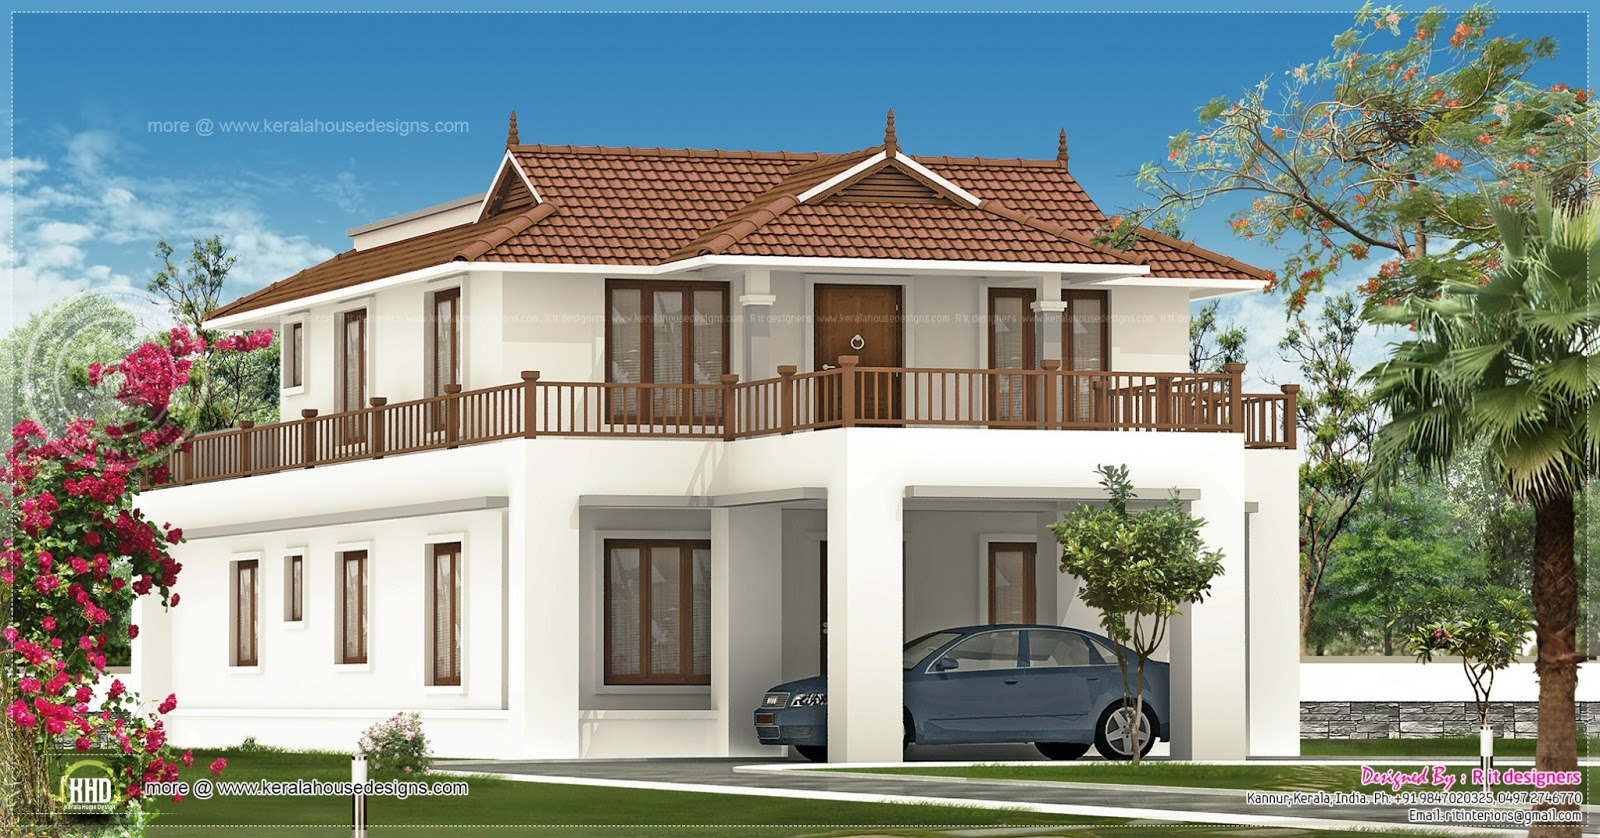 2820 square feet house exterior design home kerala plans for House exterior design pictures in indian